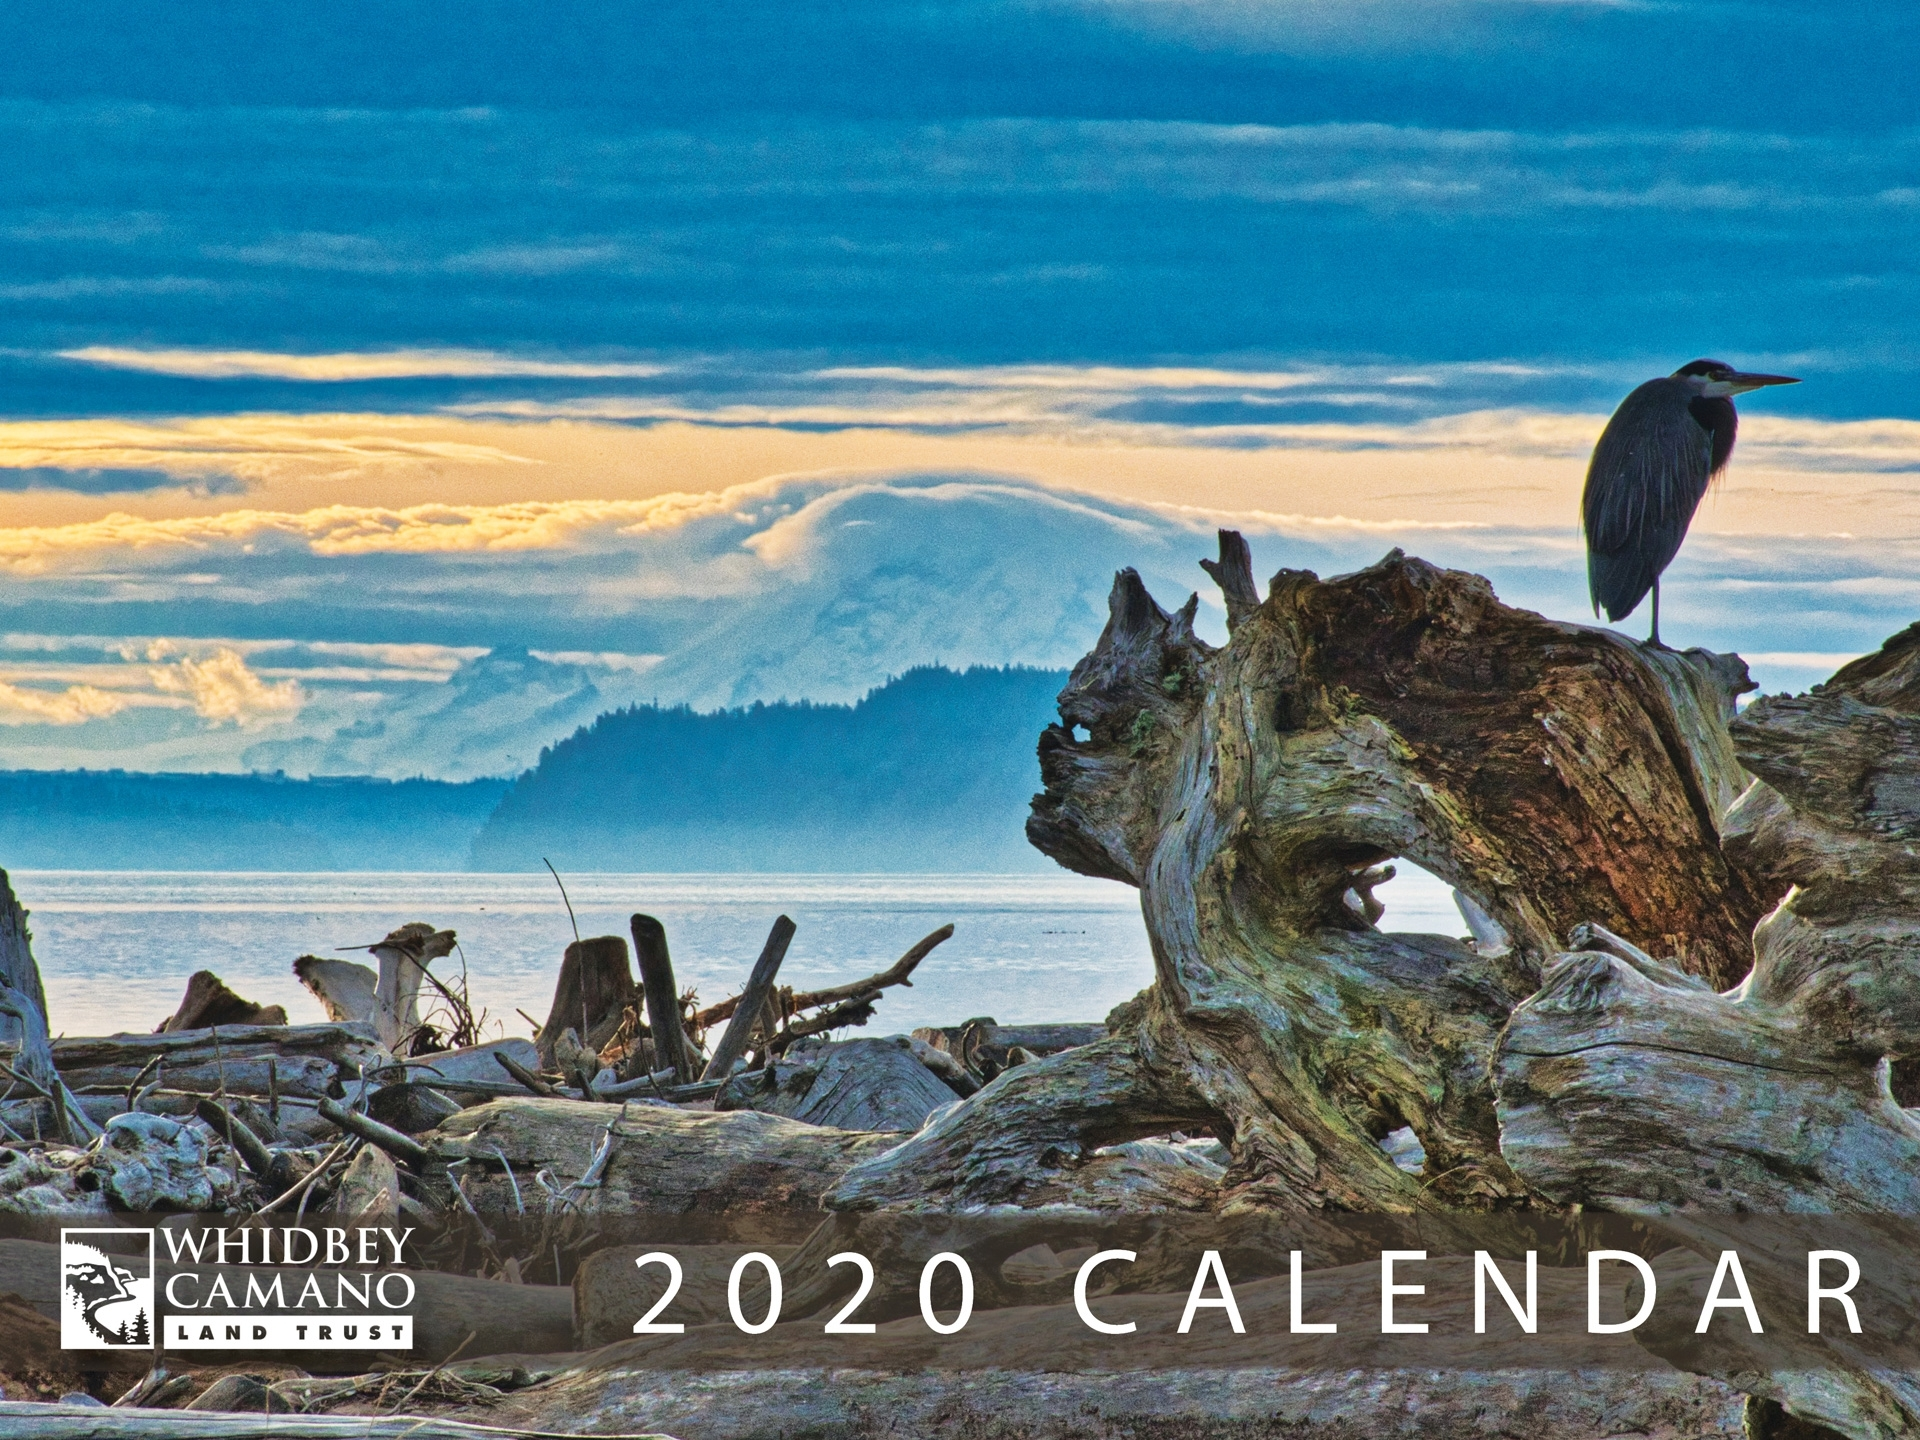 Photo Calendar - Whidbey Camano Land Trust